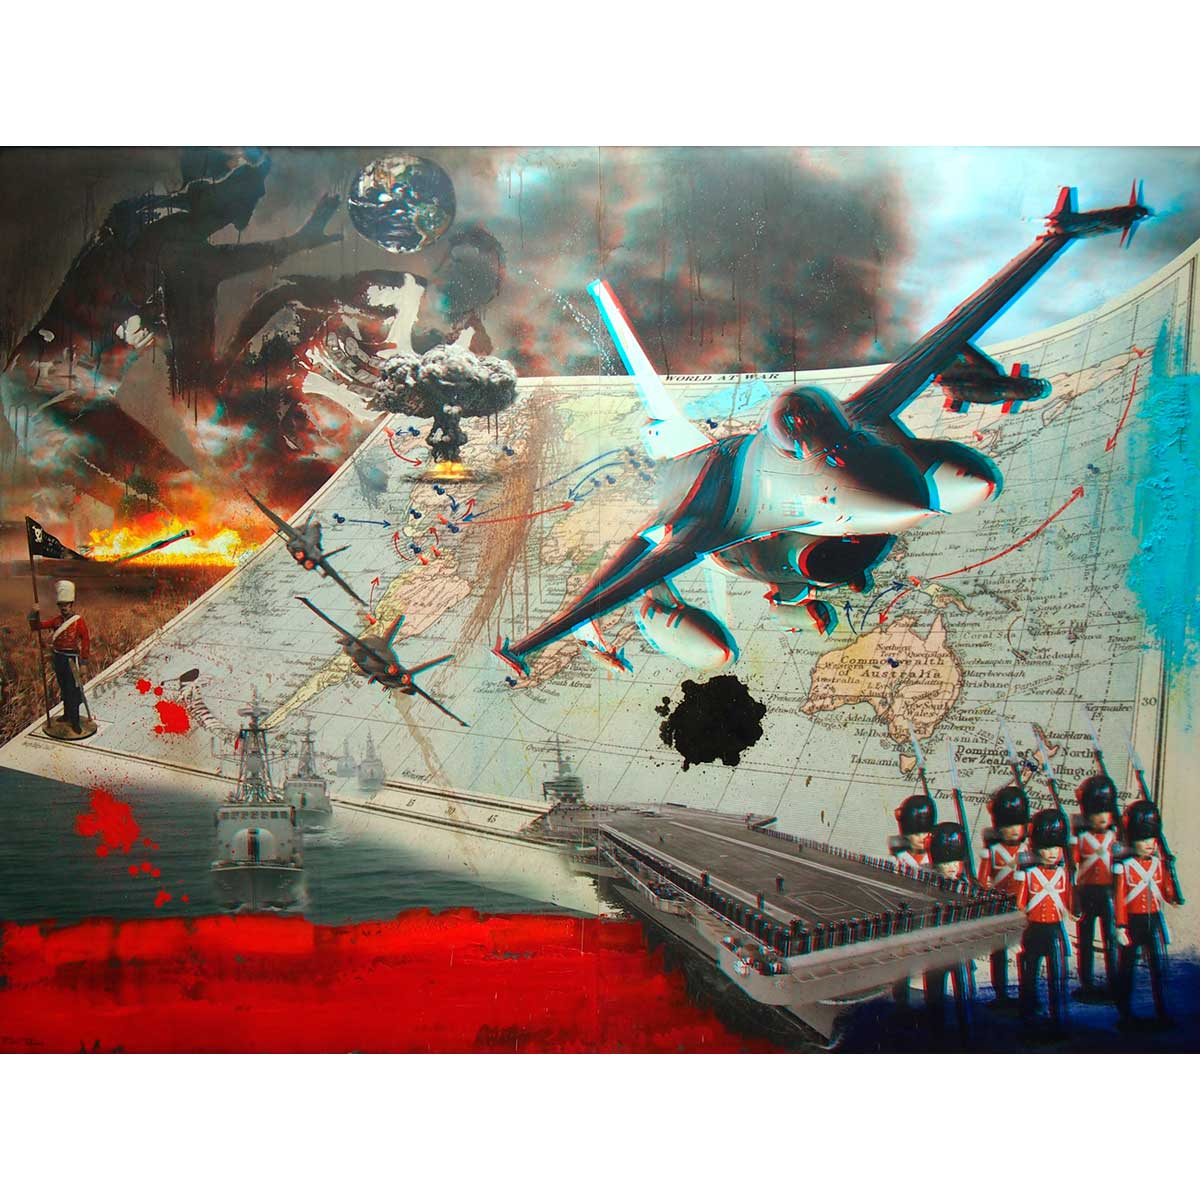 RAFAEL RECUERO - Risk (collage digital 3D y óleo sobre tabla)